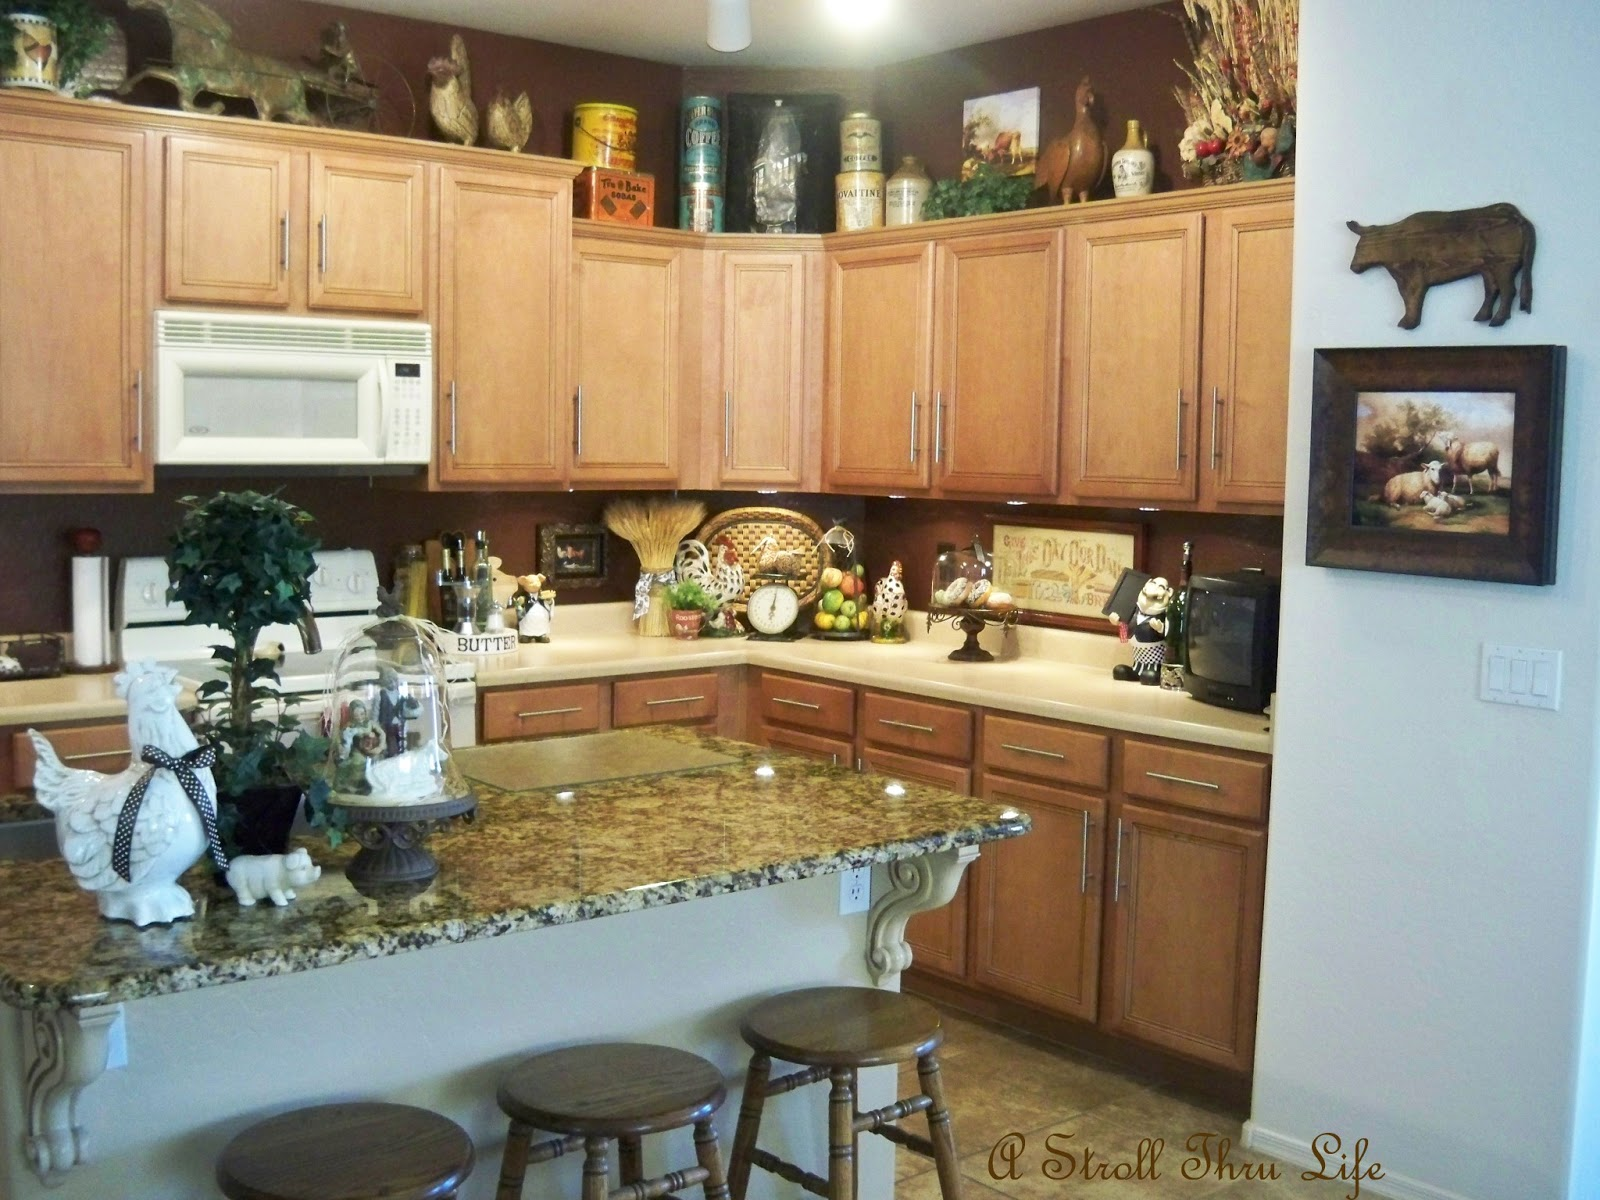 Kitchen And Accessories Decorations